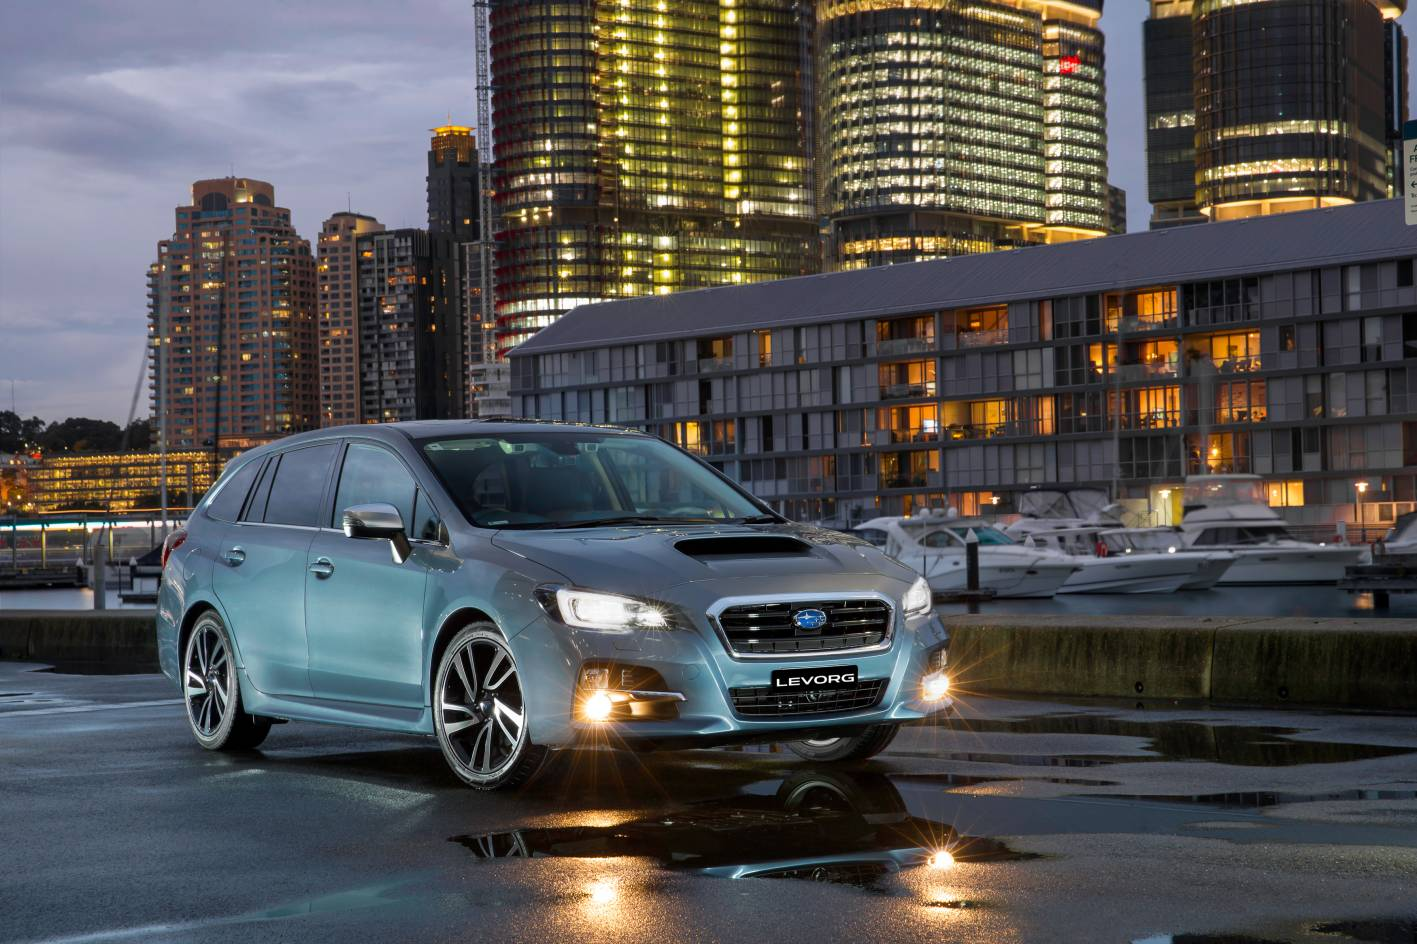 Levorg is excellent value - with many features standard, which are typically high cost options on premium Euro vehicles costing thousands more